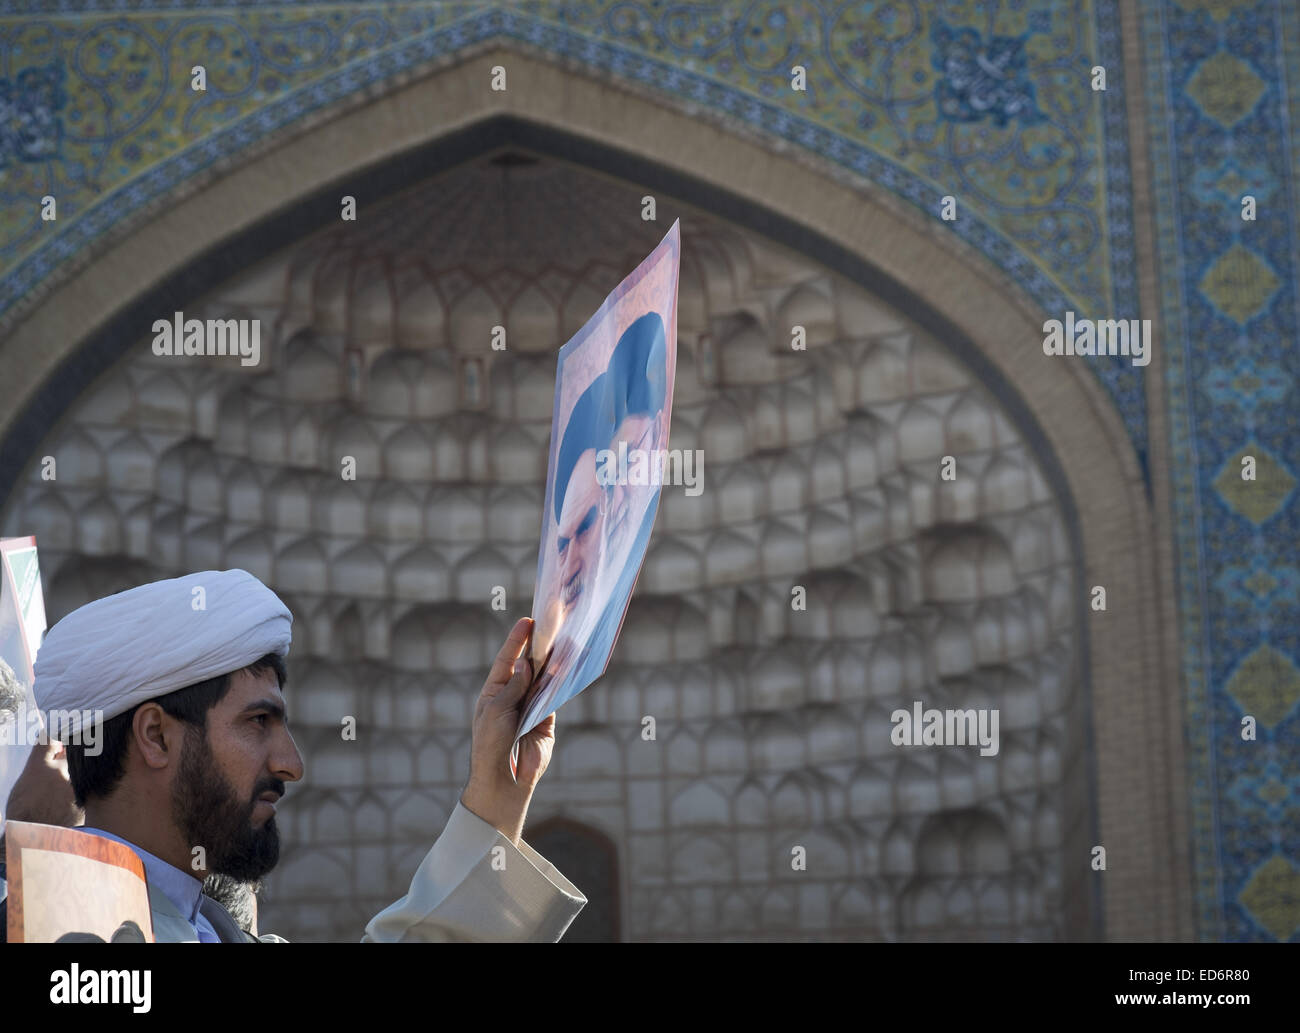 Qom, Iran. 30th Dec, 2014. December 30, 2014 - Qom, Iran - An Iranian cleric holds a poster with portraits of Iran's - Stock Image